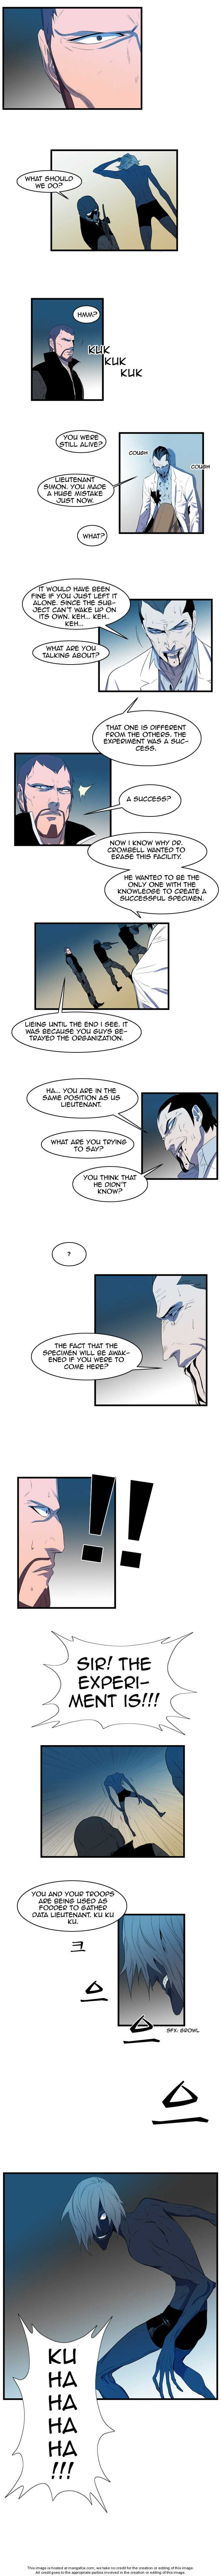 Noblesse 85 Page 2